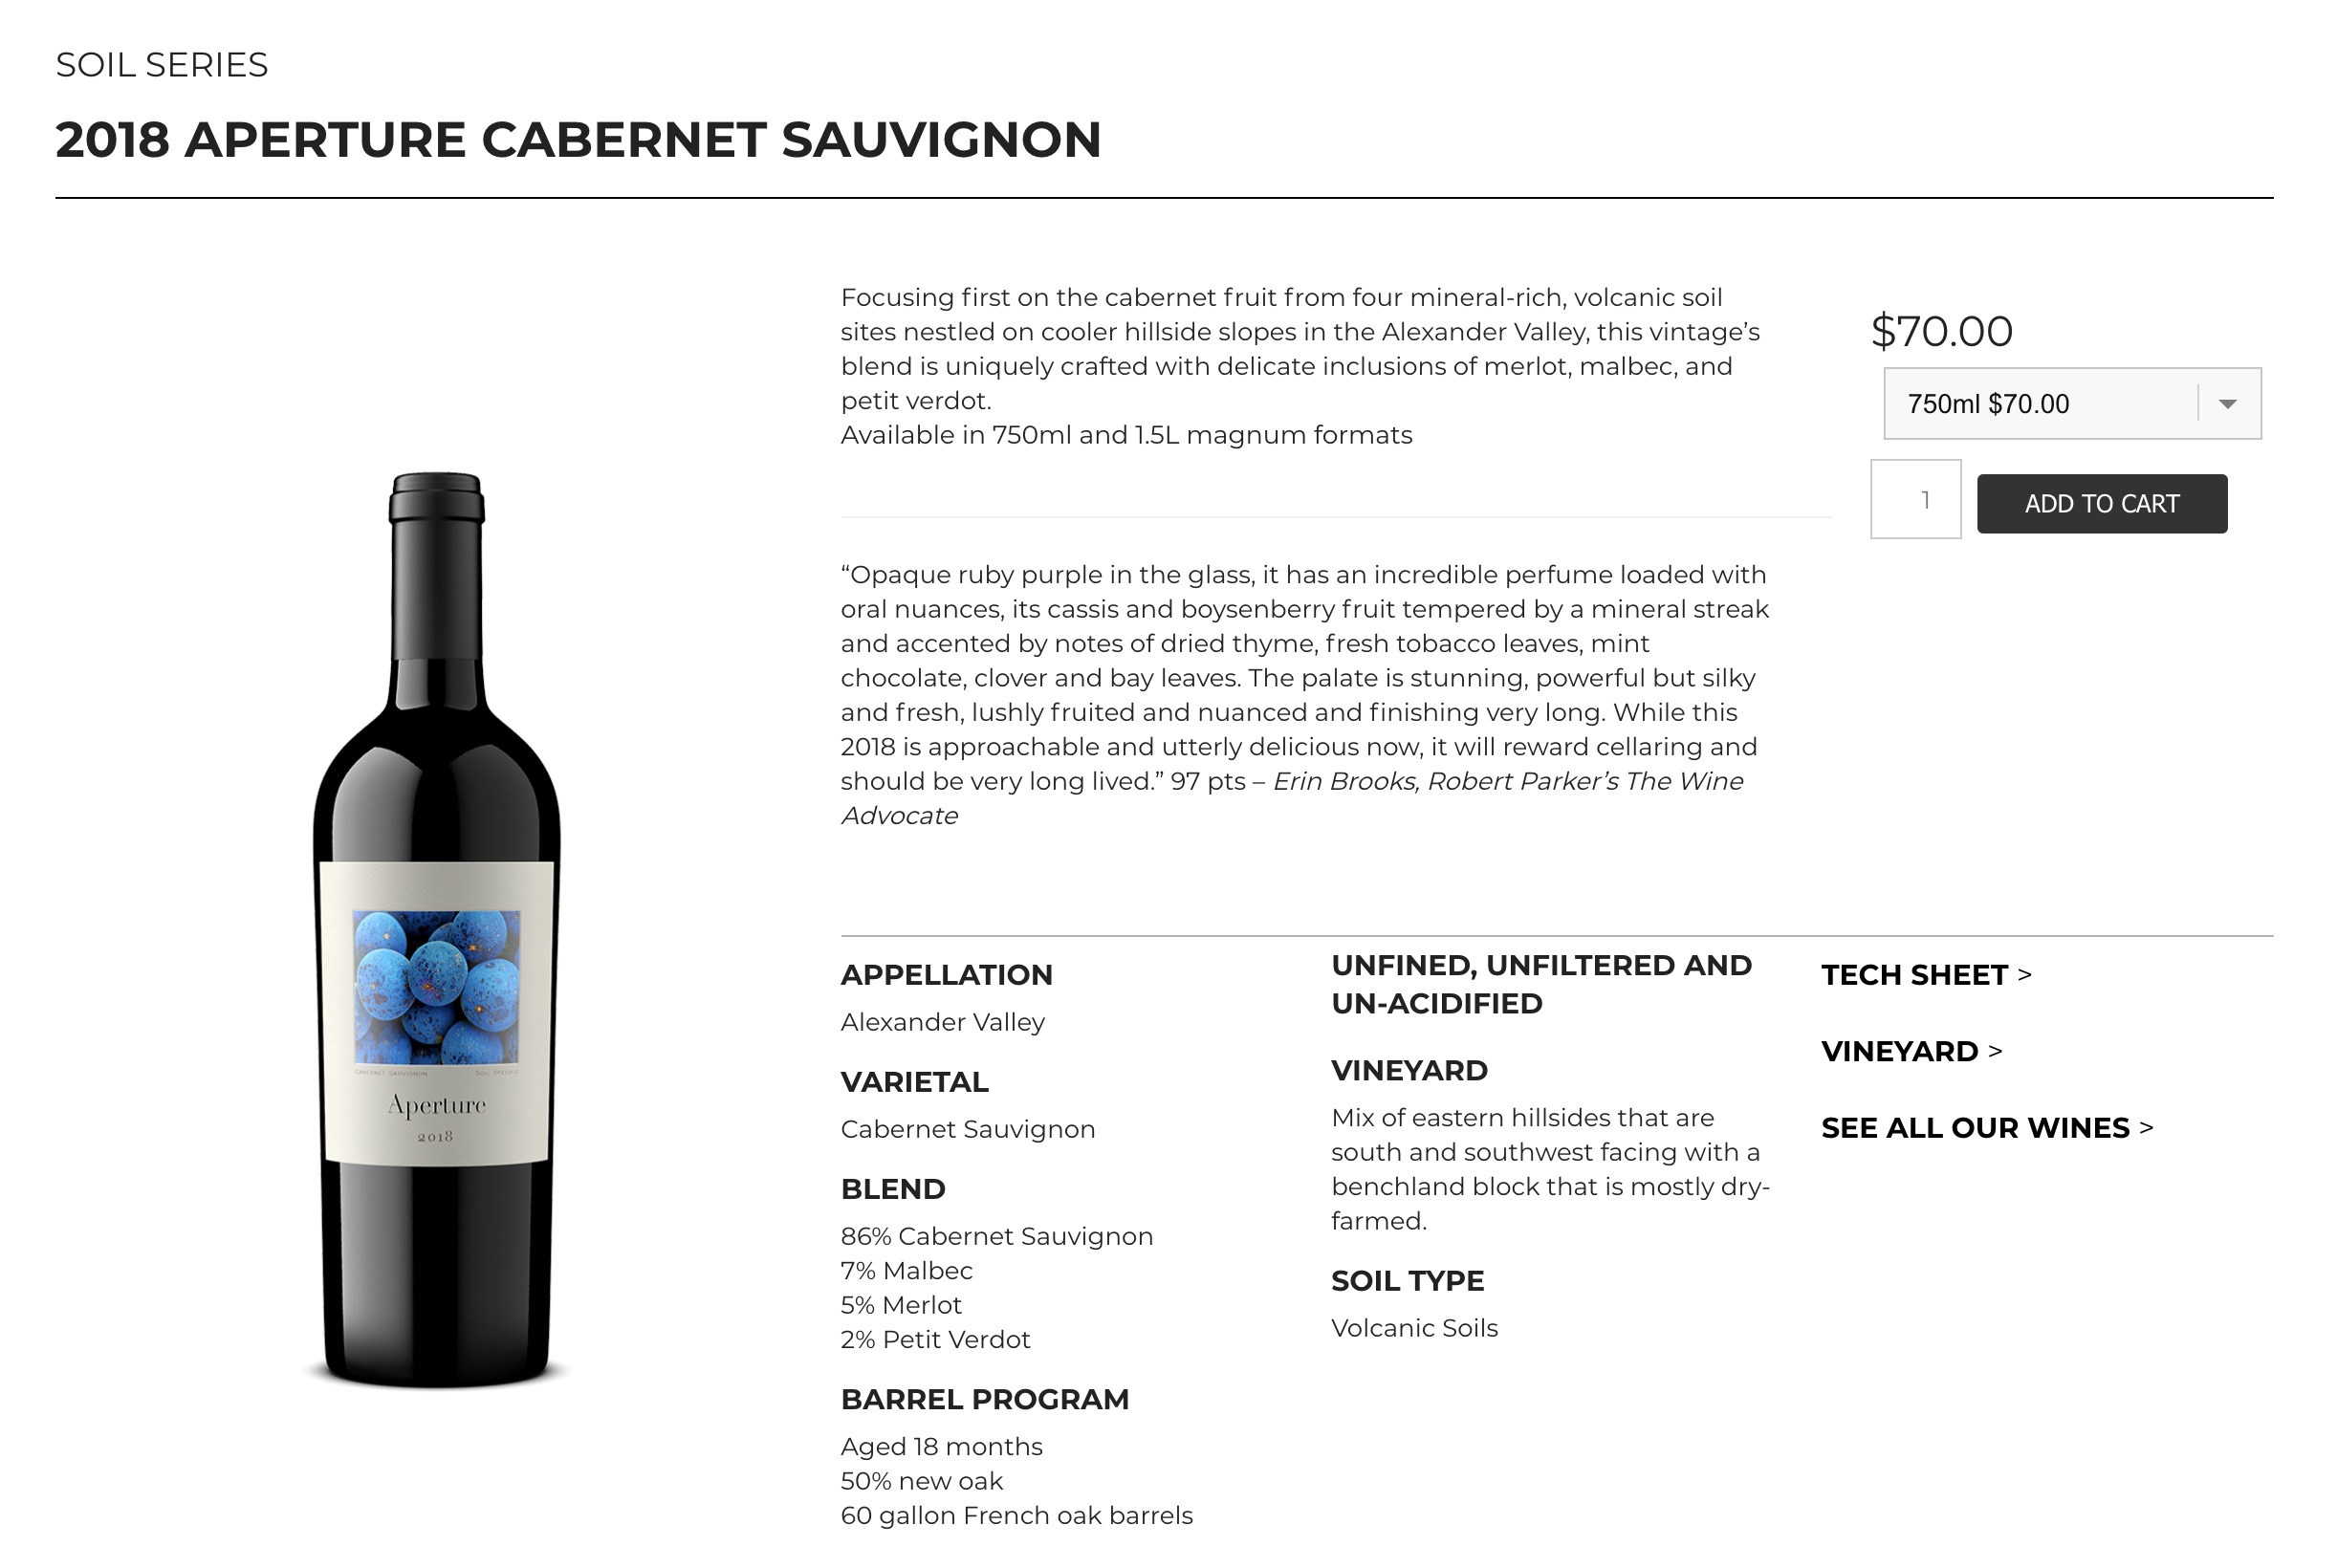 Samples of Aperture wines shop page